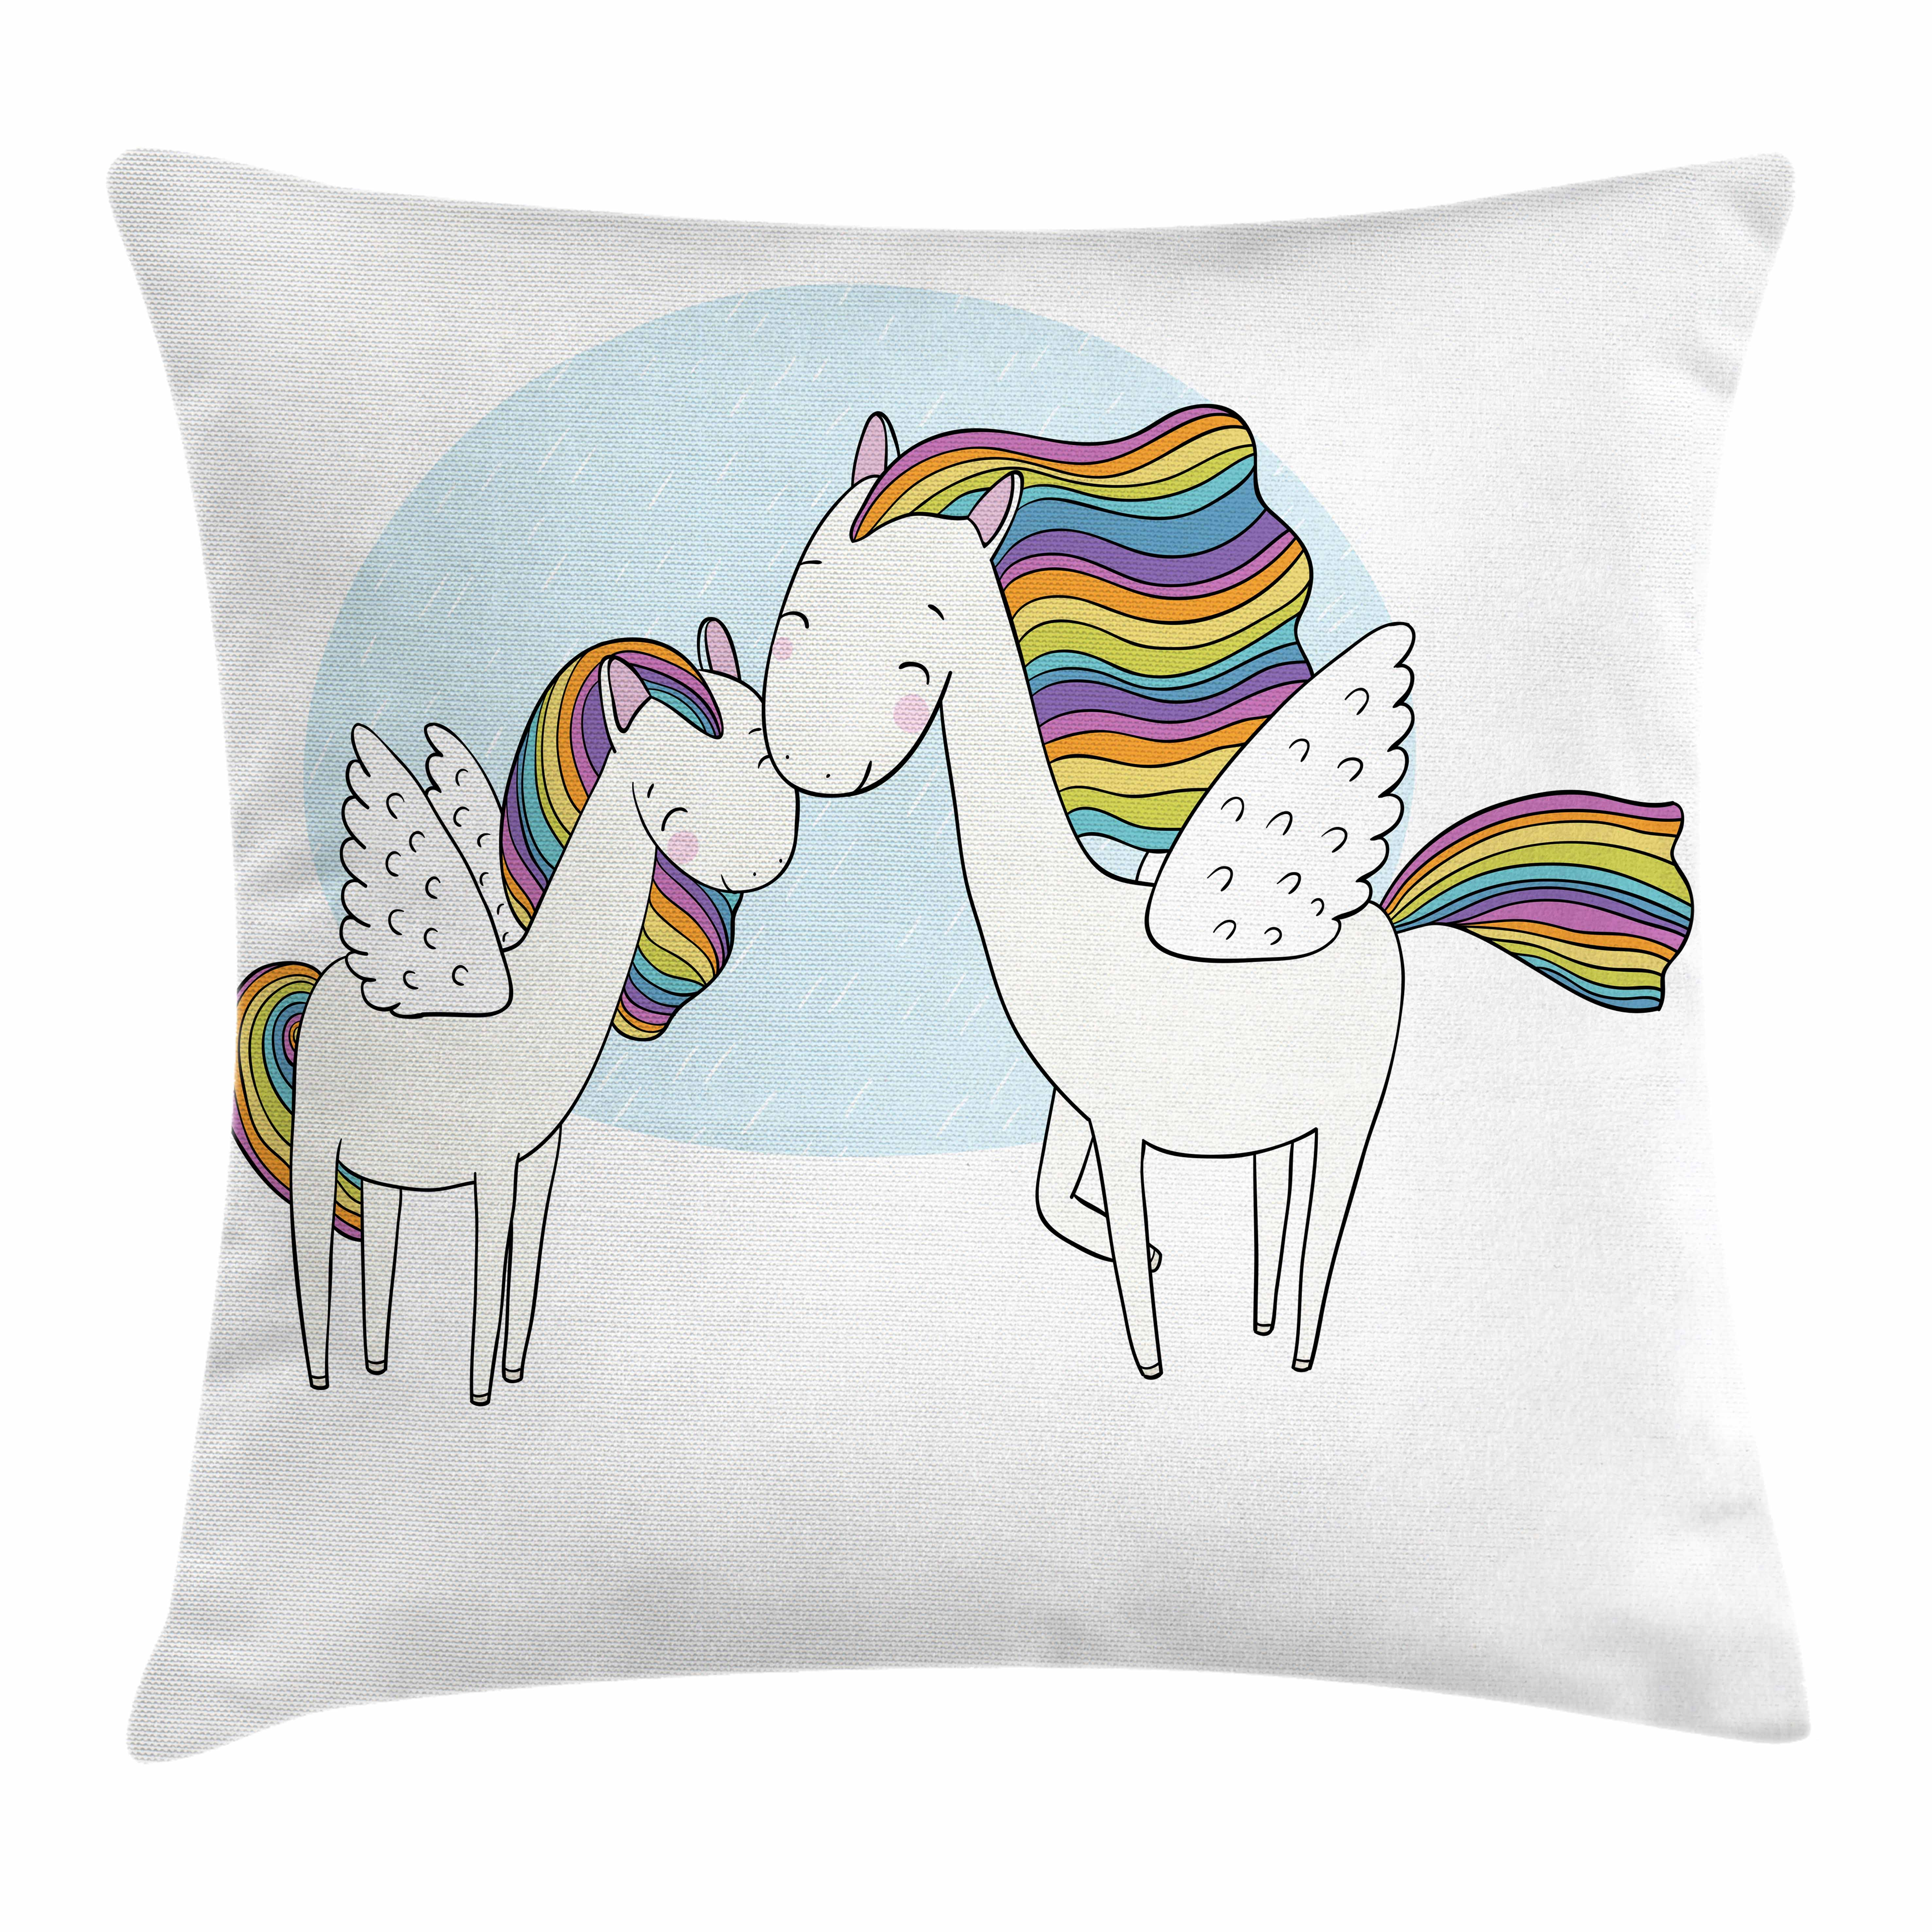 Unicorn Throw Pillow Cushion Cover, Pegasus Horses with Manes in Rainbow Colors and Wings Sweet Mythological Kids Tale, Decorative Square Accent Pillow Case, 18 X 18 Inches, Multicolor, by Ambesonne